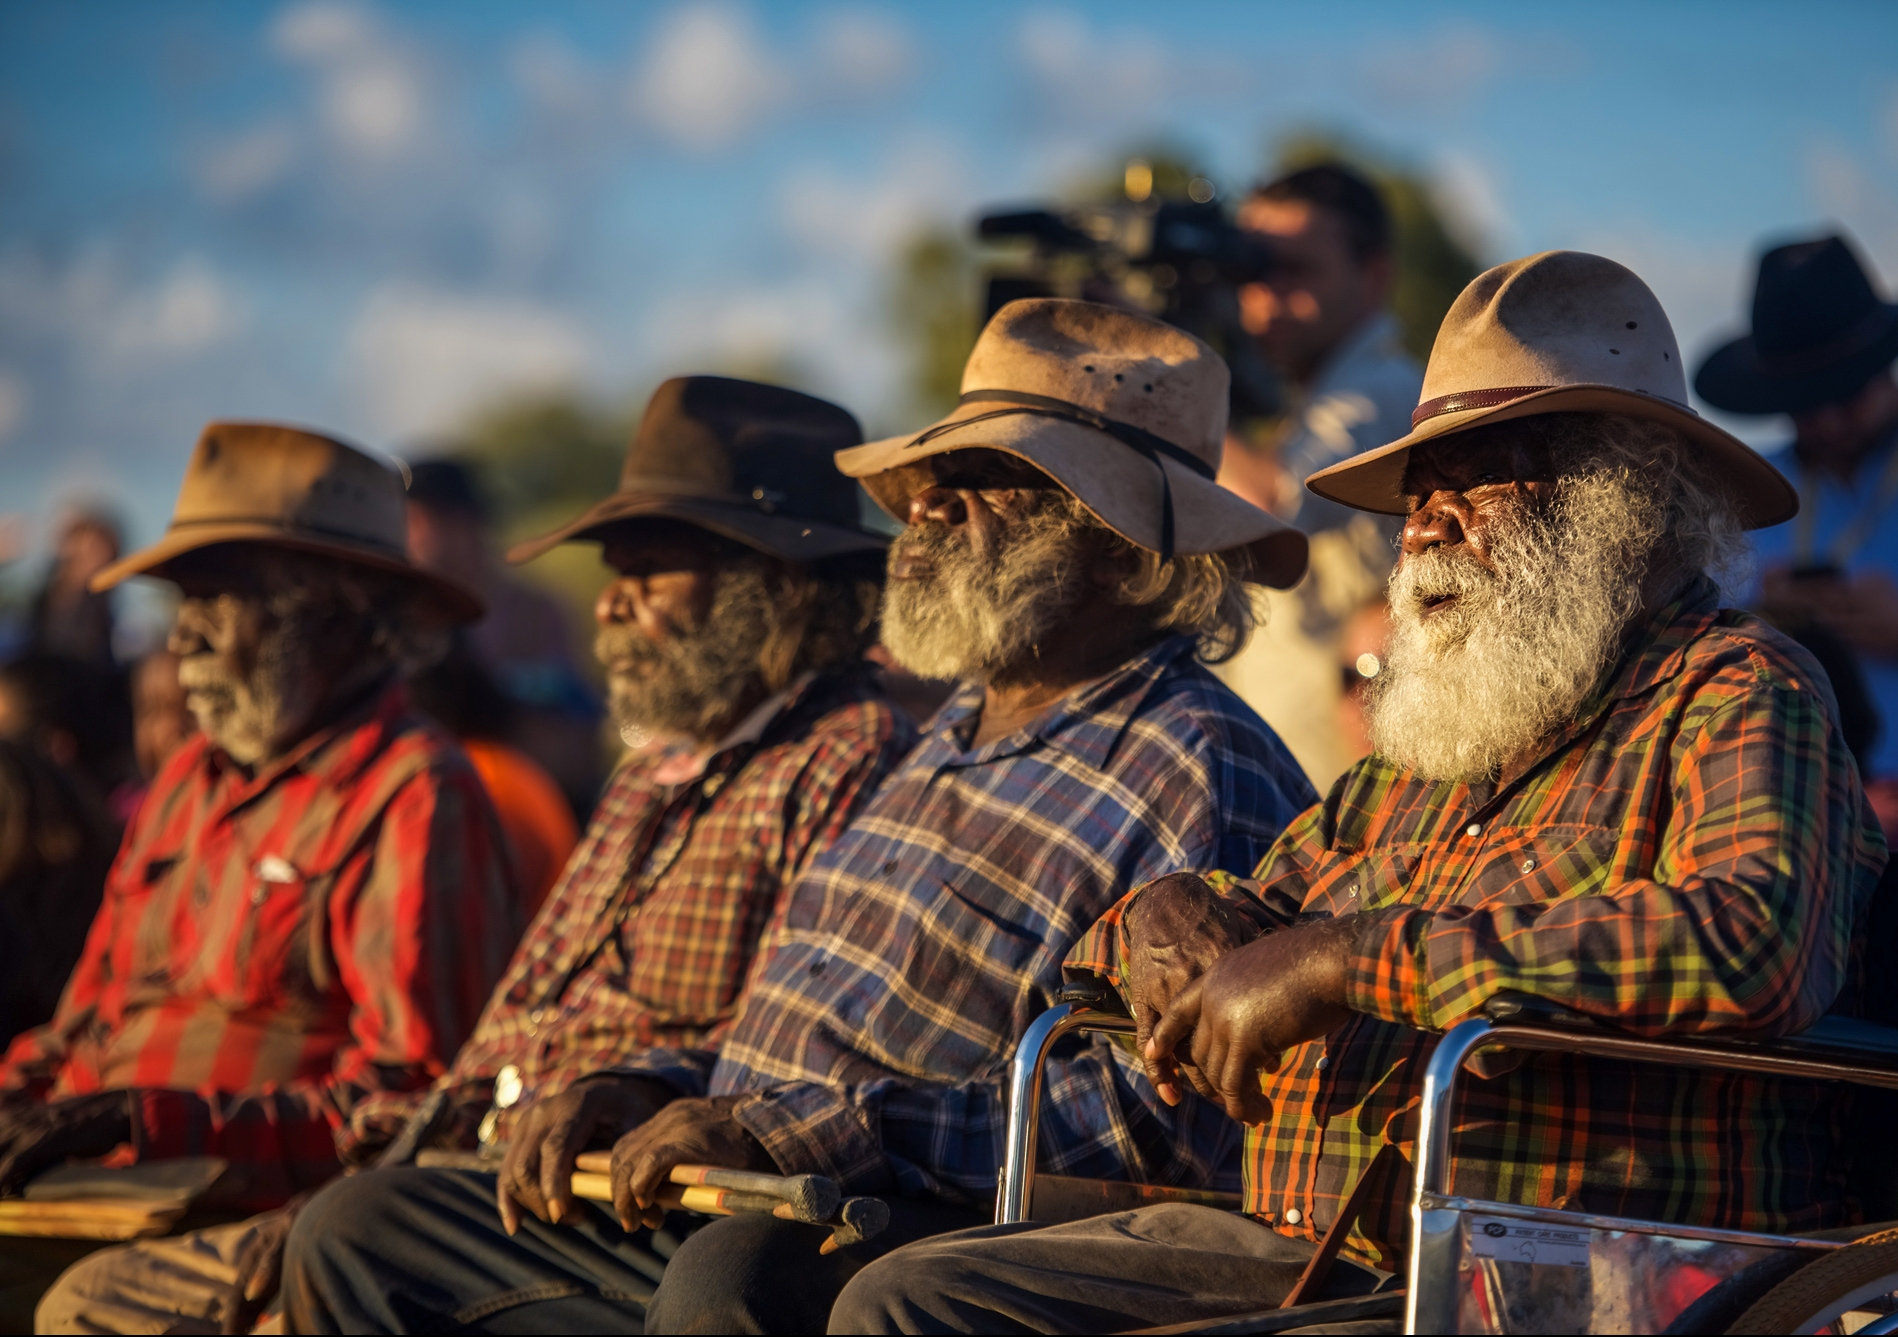 1200 First Nations people were involved in the 13 Regional Dialogues across Australia that led to the Uluru Constitutional Convention in 2017. Photo: UNSW Indigenous Law Centre